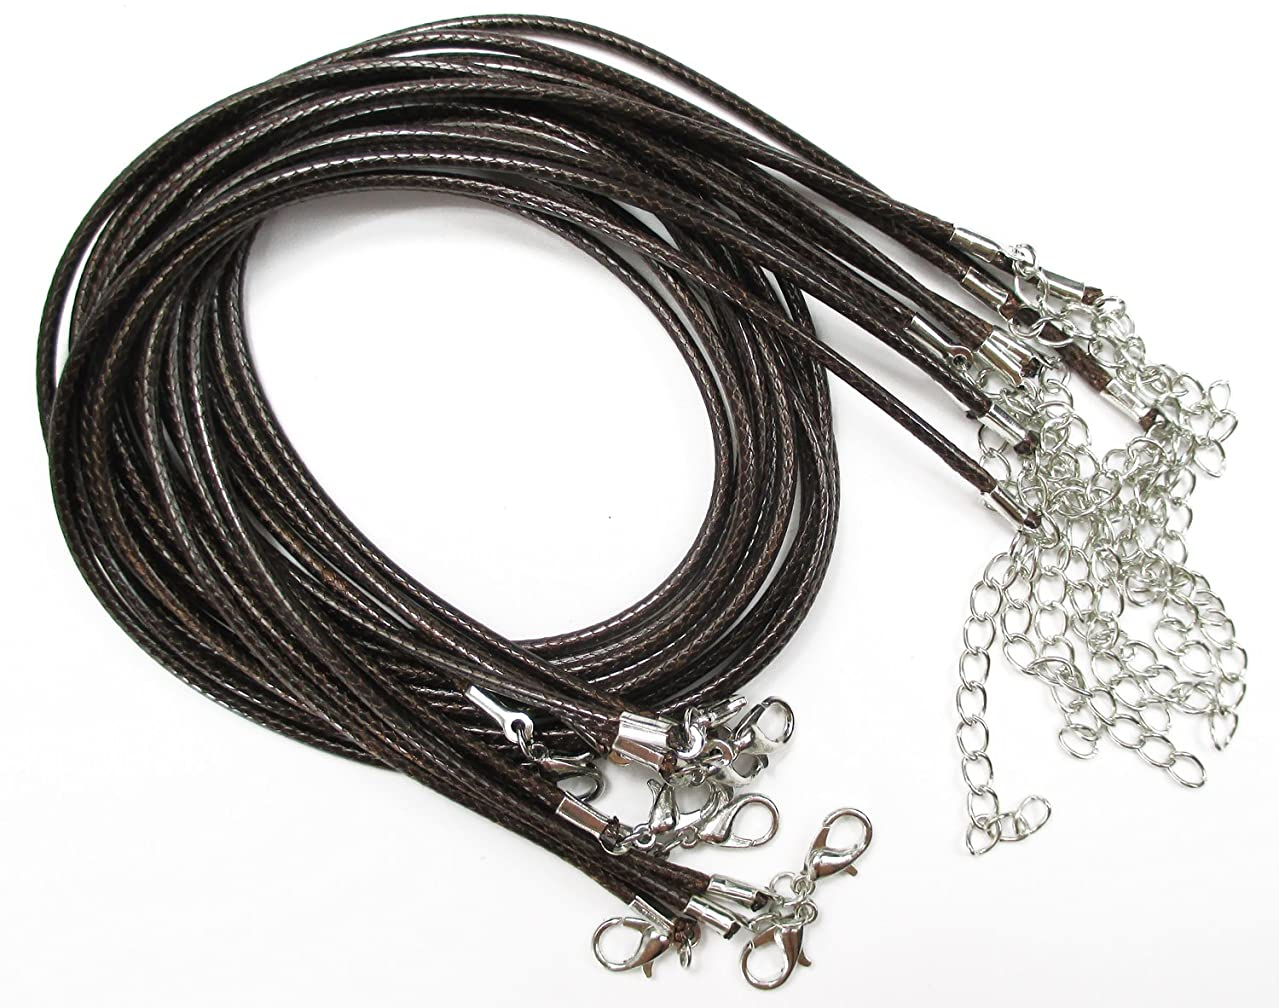 "ALL in ONE Faux Leather Braided Cord Necklace with Lobster Clasp Extended Chain 17""-19"" (1.5MM, BROWN)"